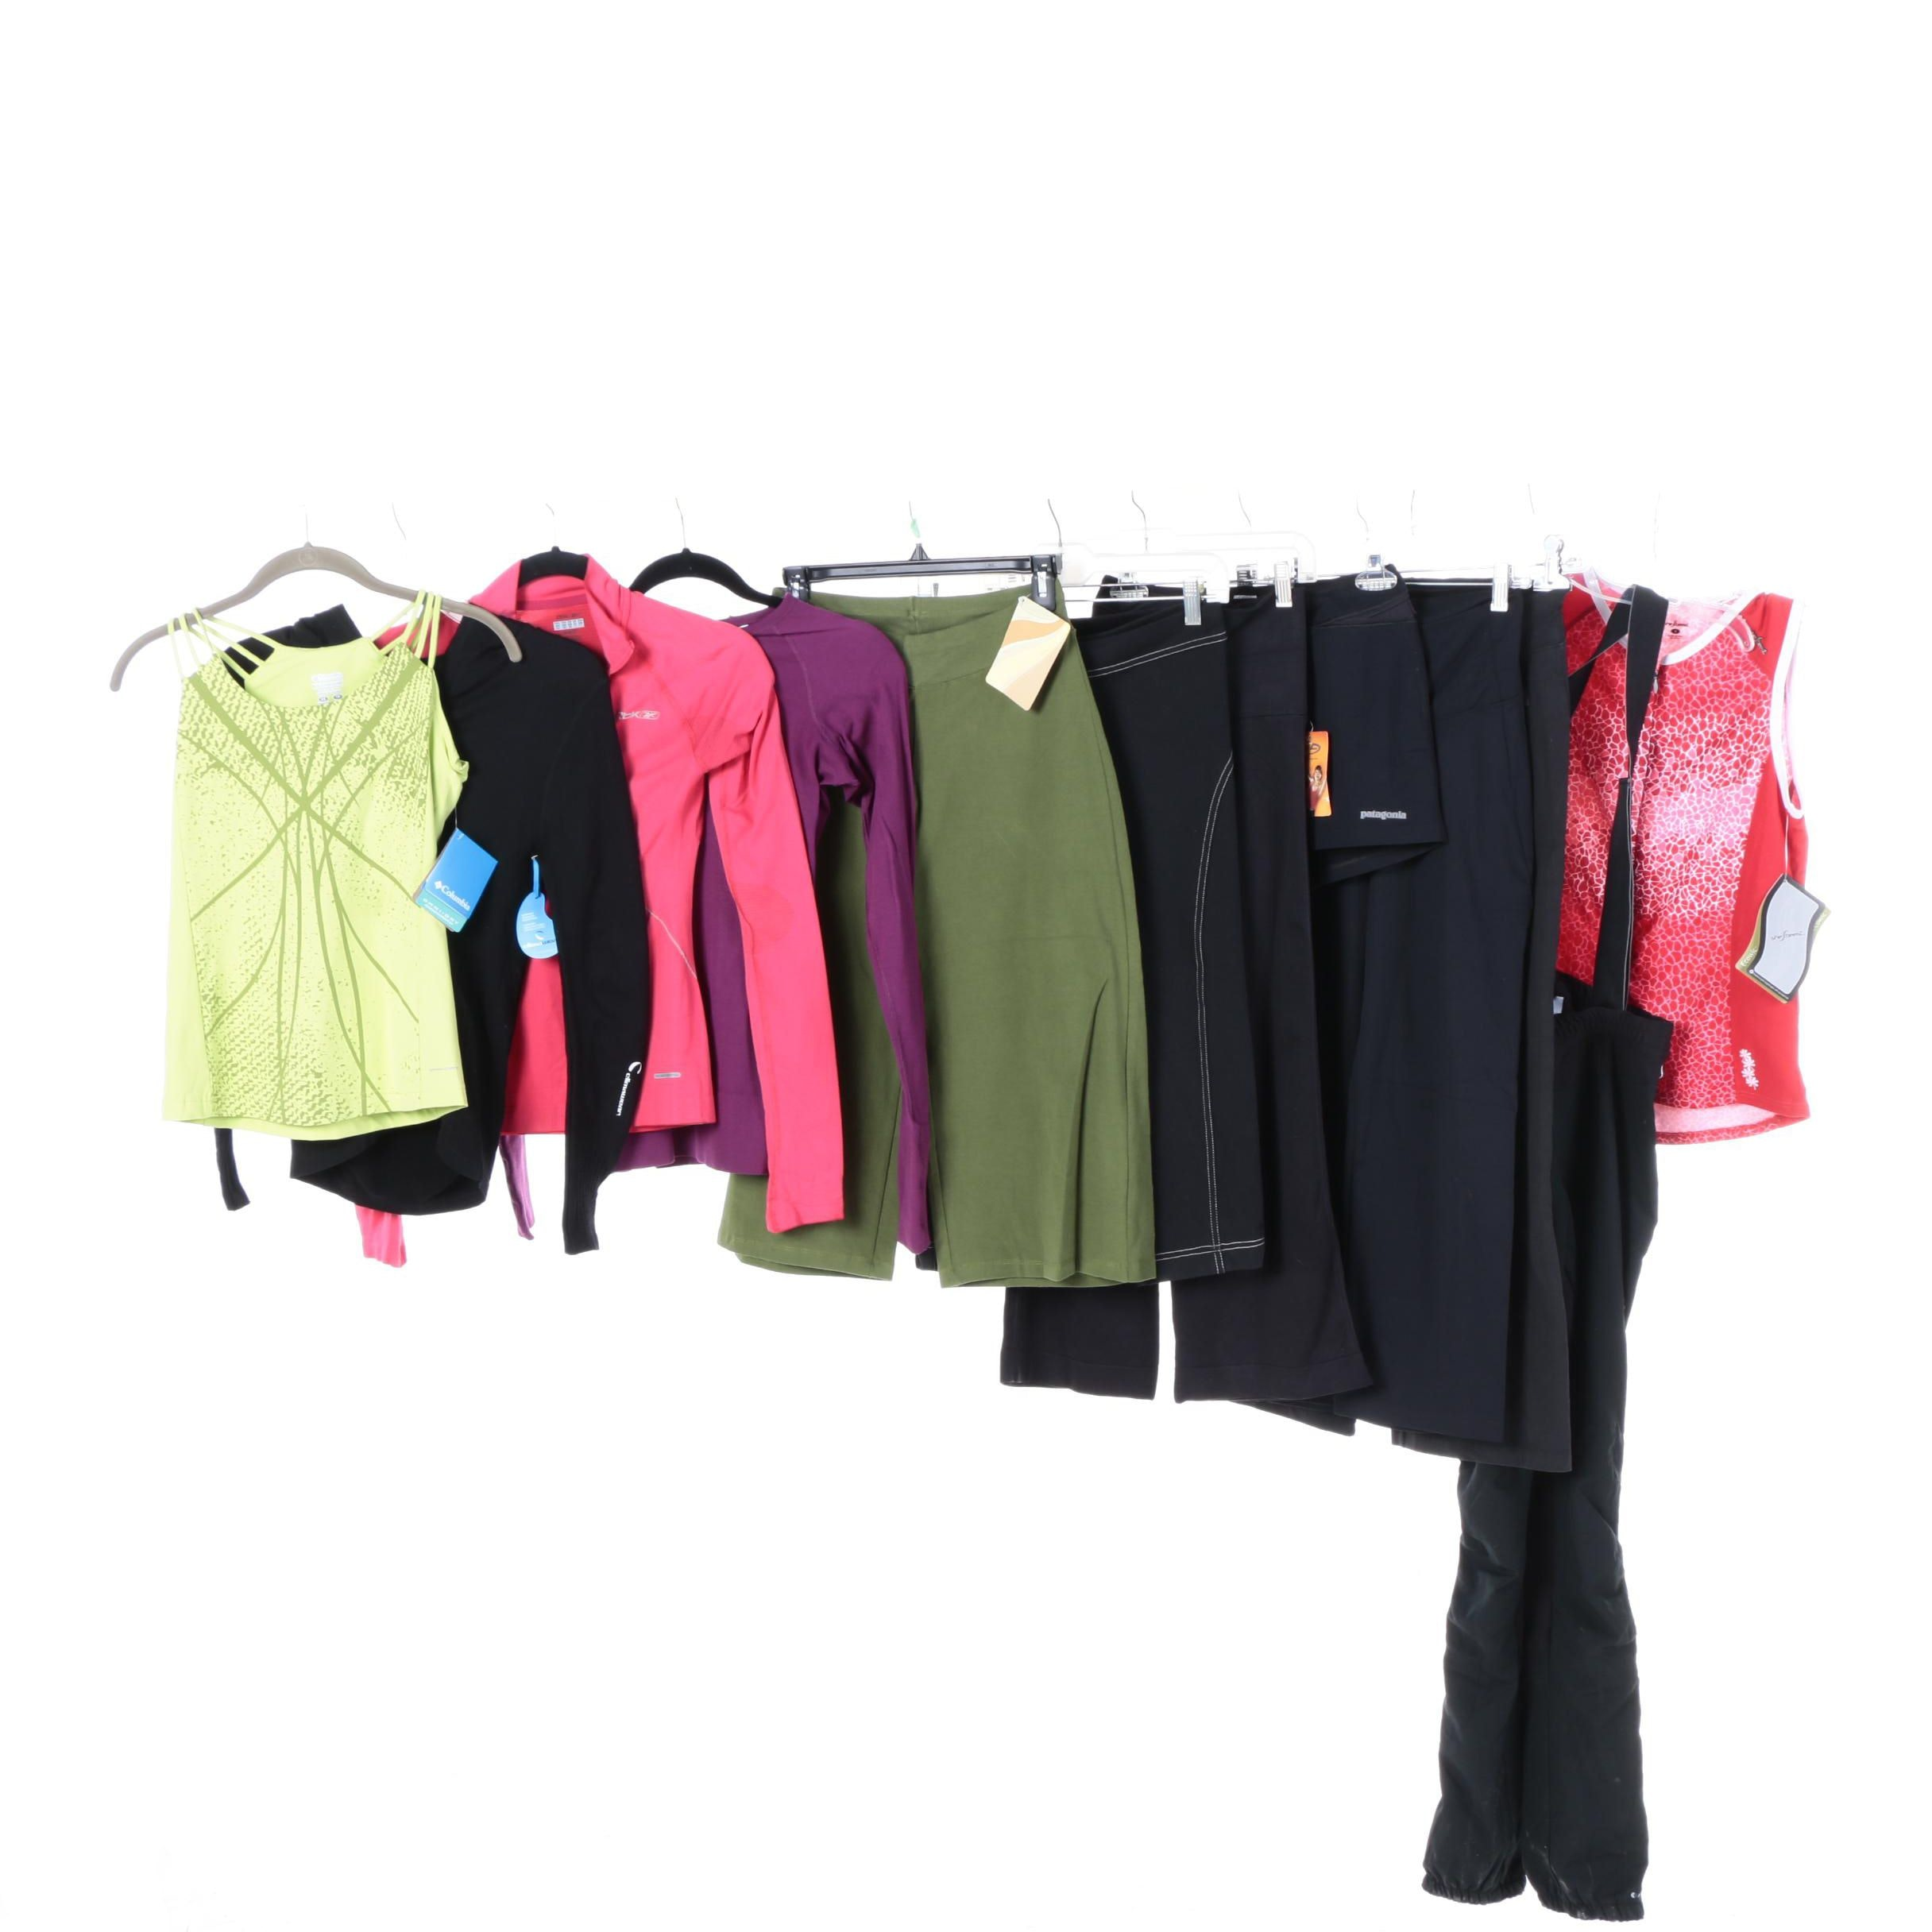 Women's Athletic Clothing Including Patagonia and The North Face